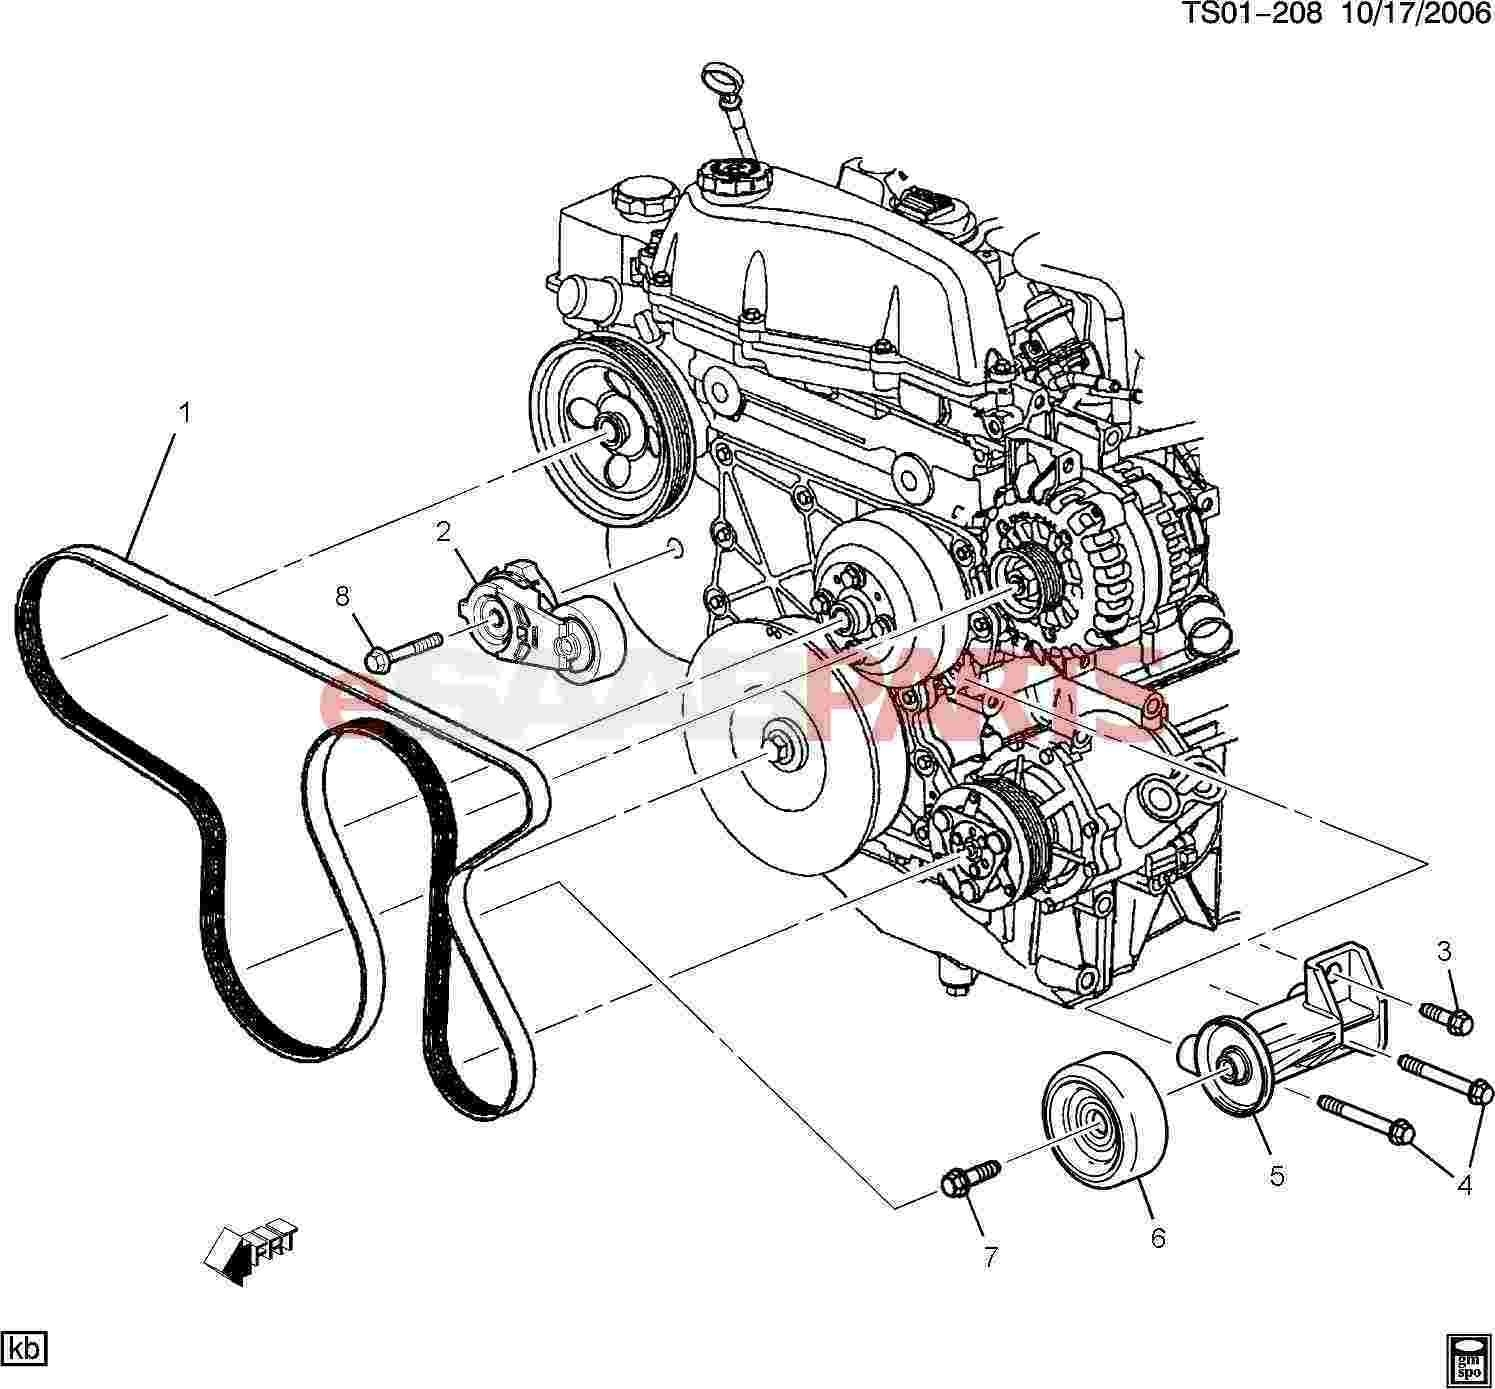 2004 toyota Tacoma Parts Diagram 2001 toyota Ta A Parts Diagram